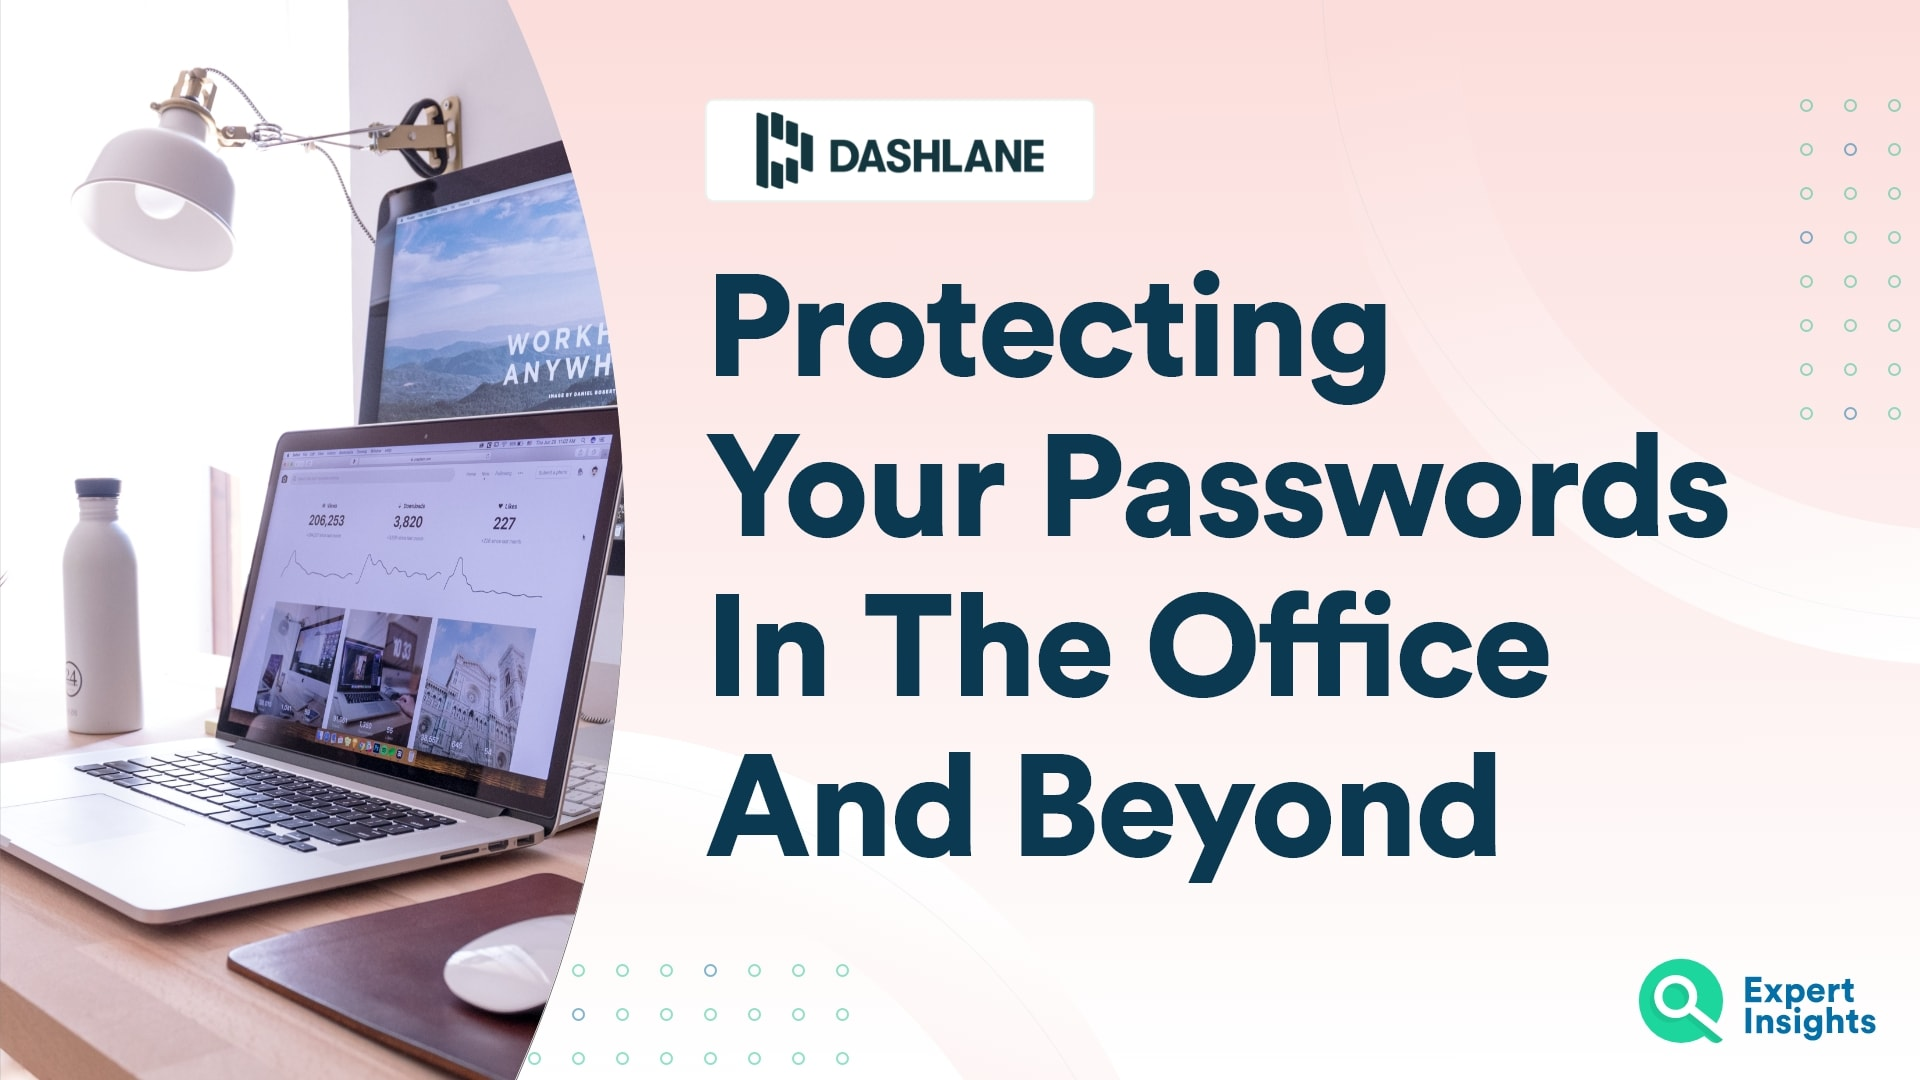 Protecting Your Passwords In The Office And Beyond - Expert Insights